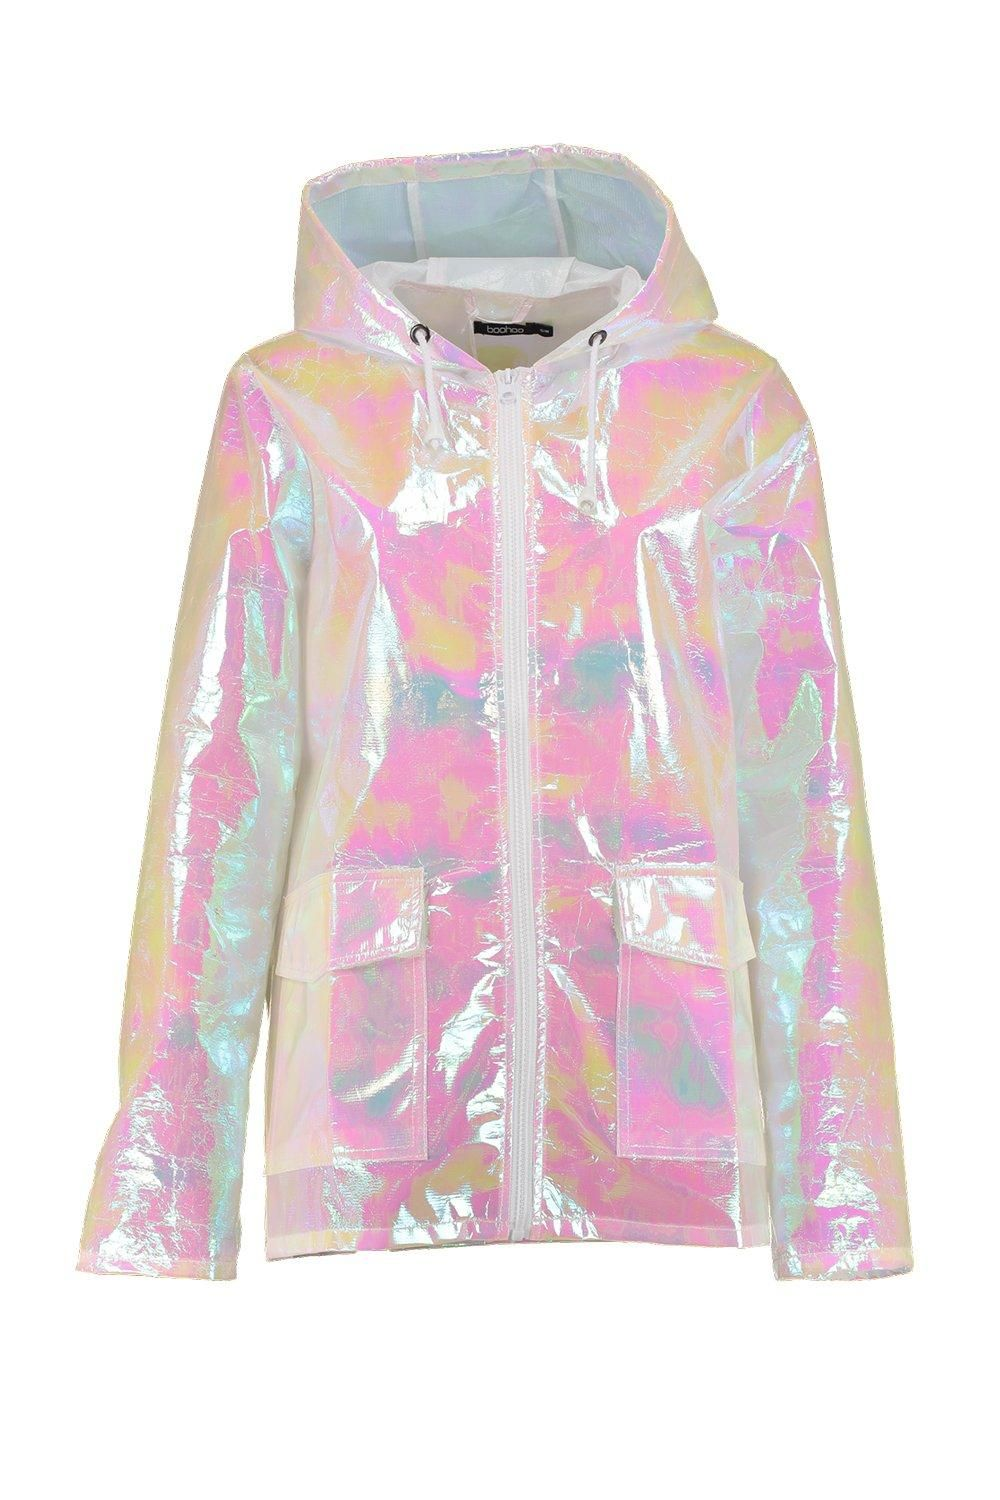 new Ladies WATERPROOF RAIN MAC PARKA Festival RAINCOAT Size S//M IRIDESCENT pink